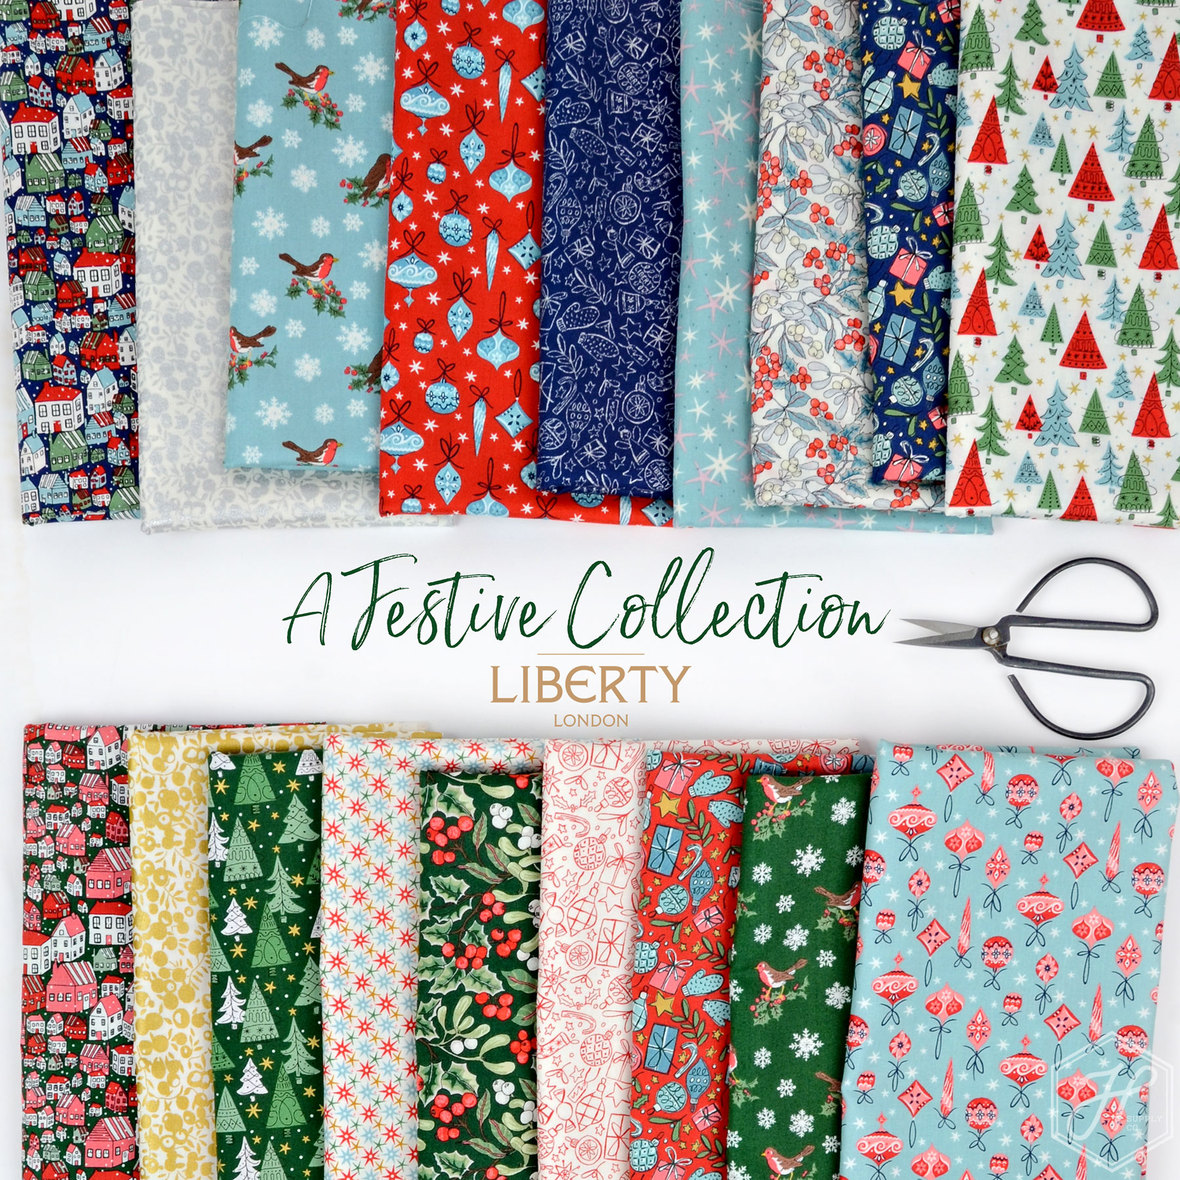 A-Festive-Collection-Liberty-of-London-for-Art-Gallery-at-Hawthorne-Supply-Co